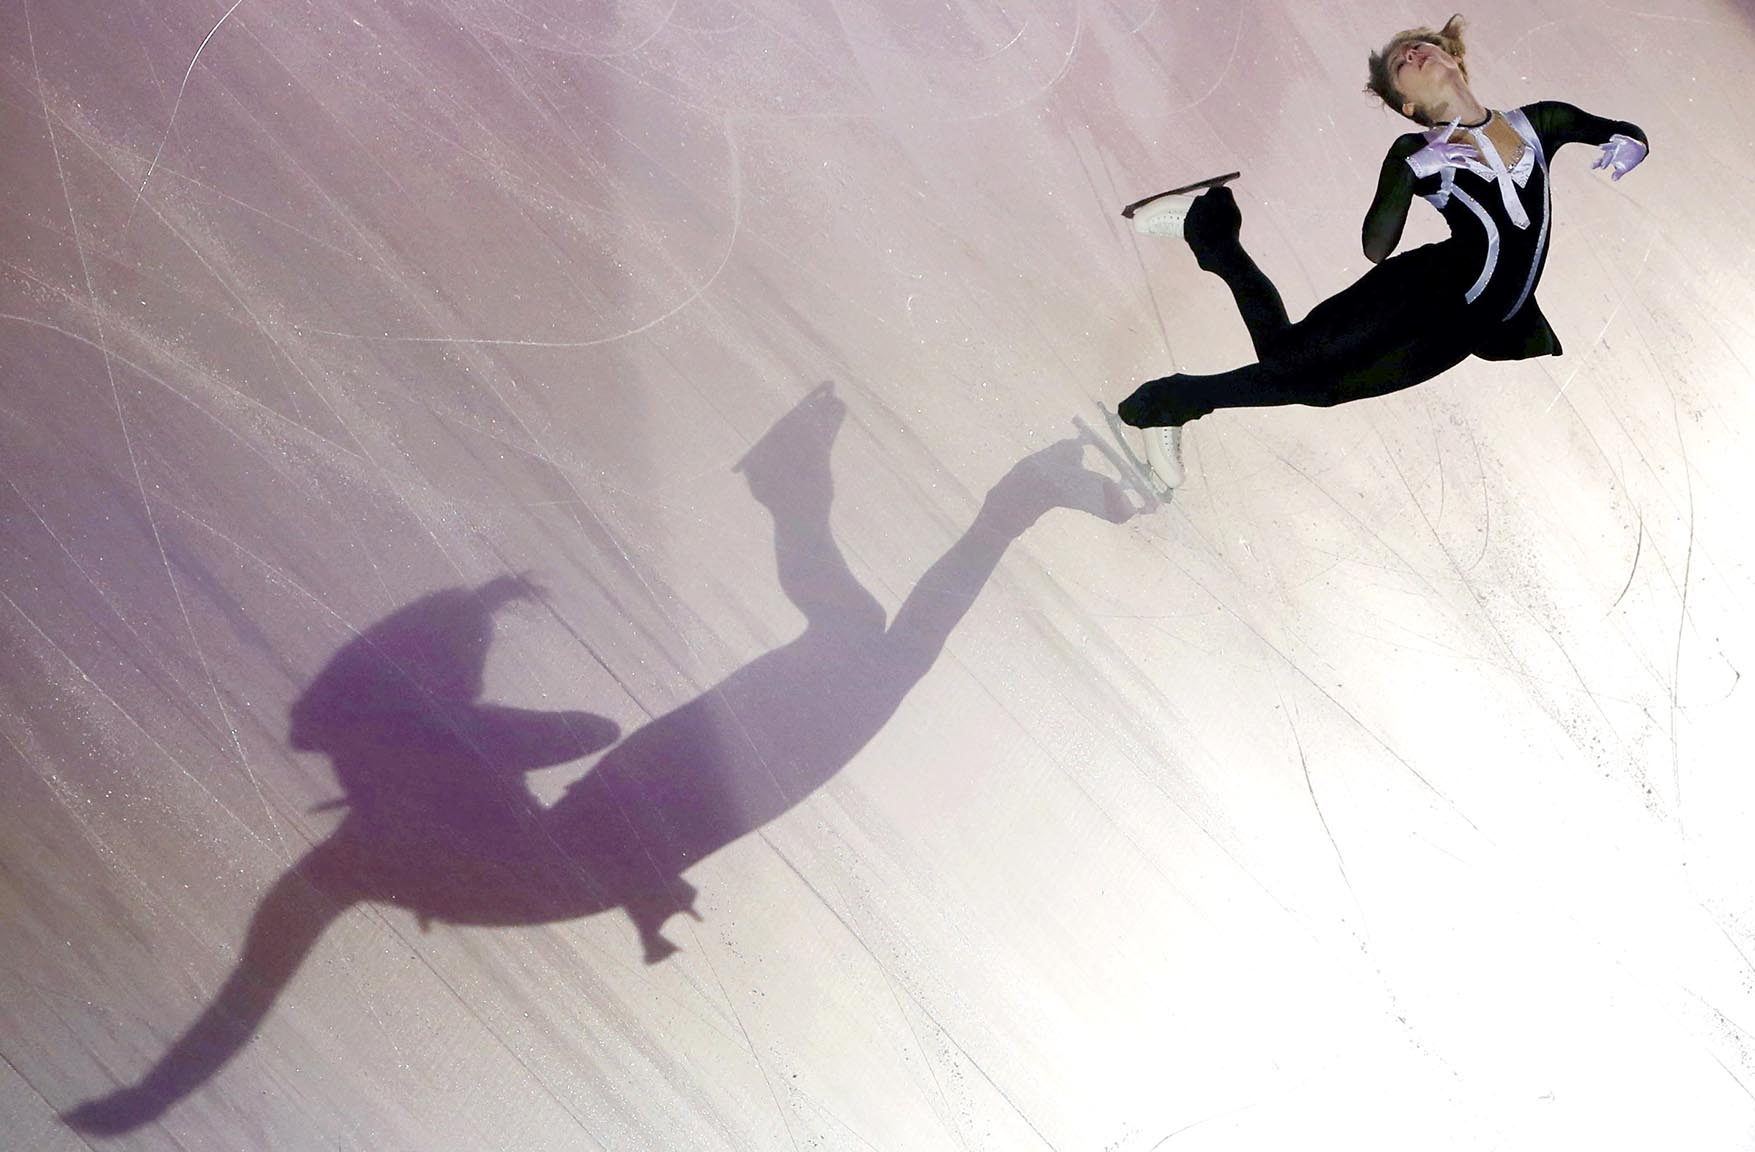 A shadow is cast on the ice as Julia Lipnitskaia of Russia performs during the gala exhibition at the ISU Bompard Trophy Figure Skating event in Bordeaux